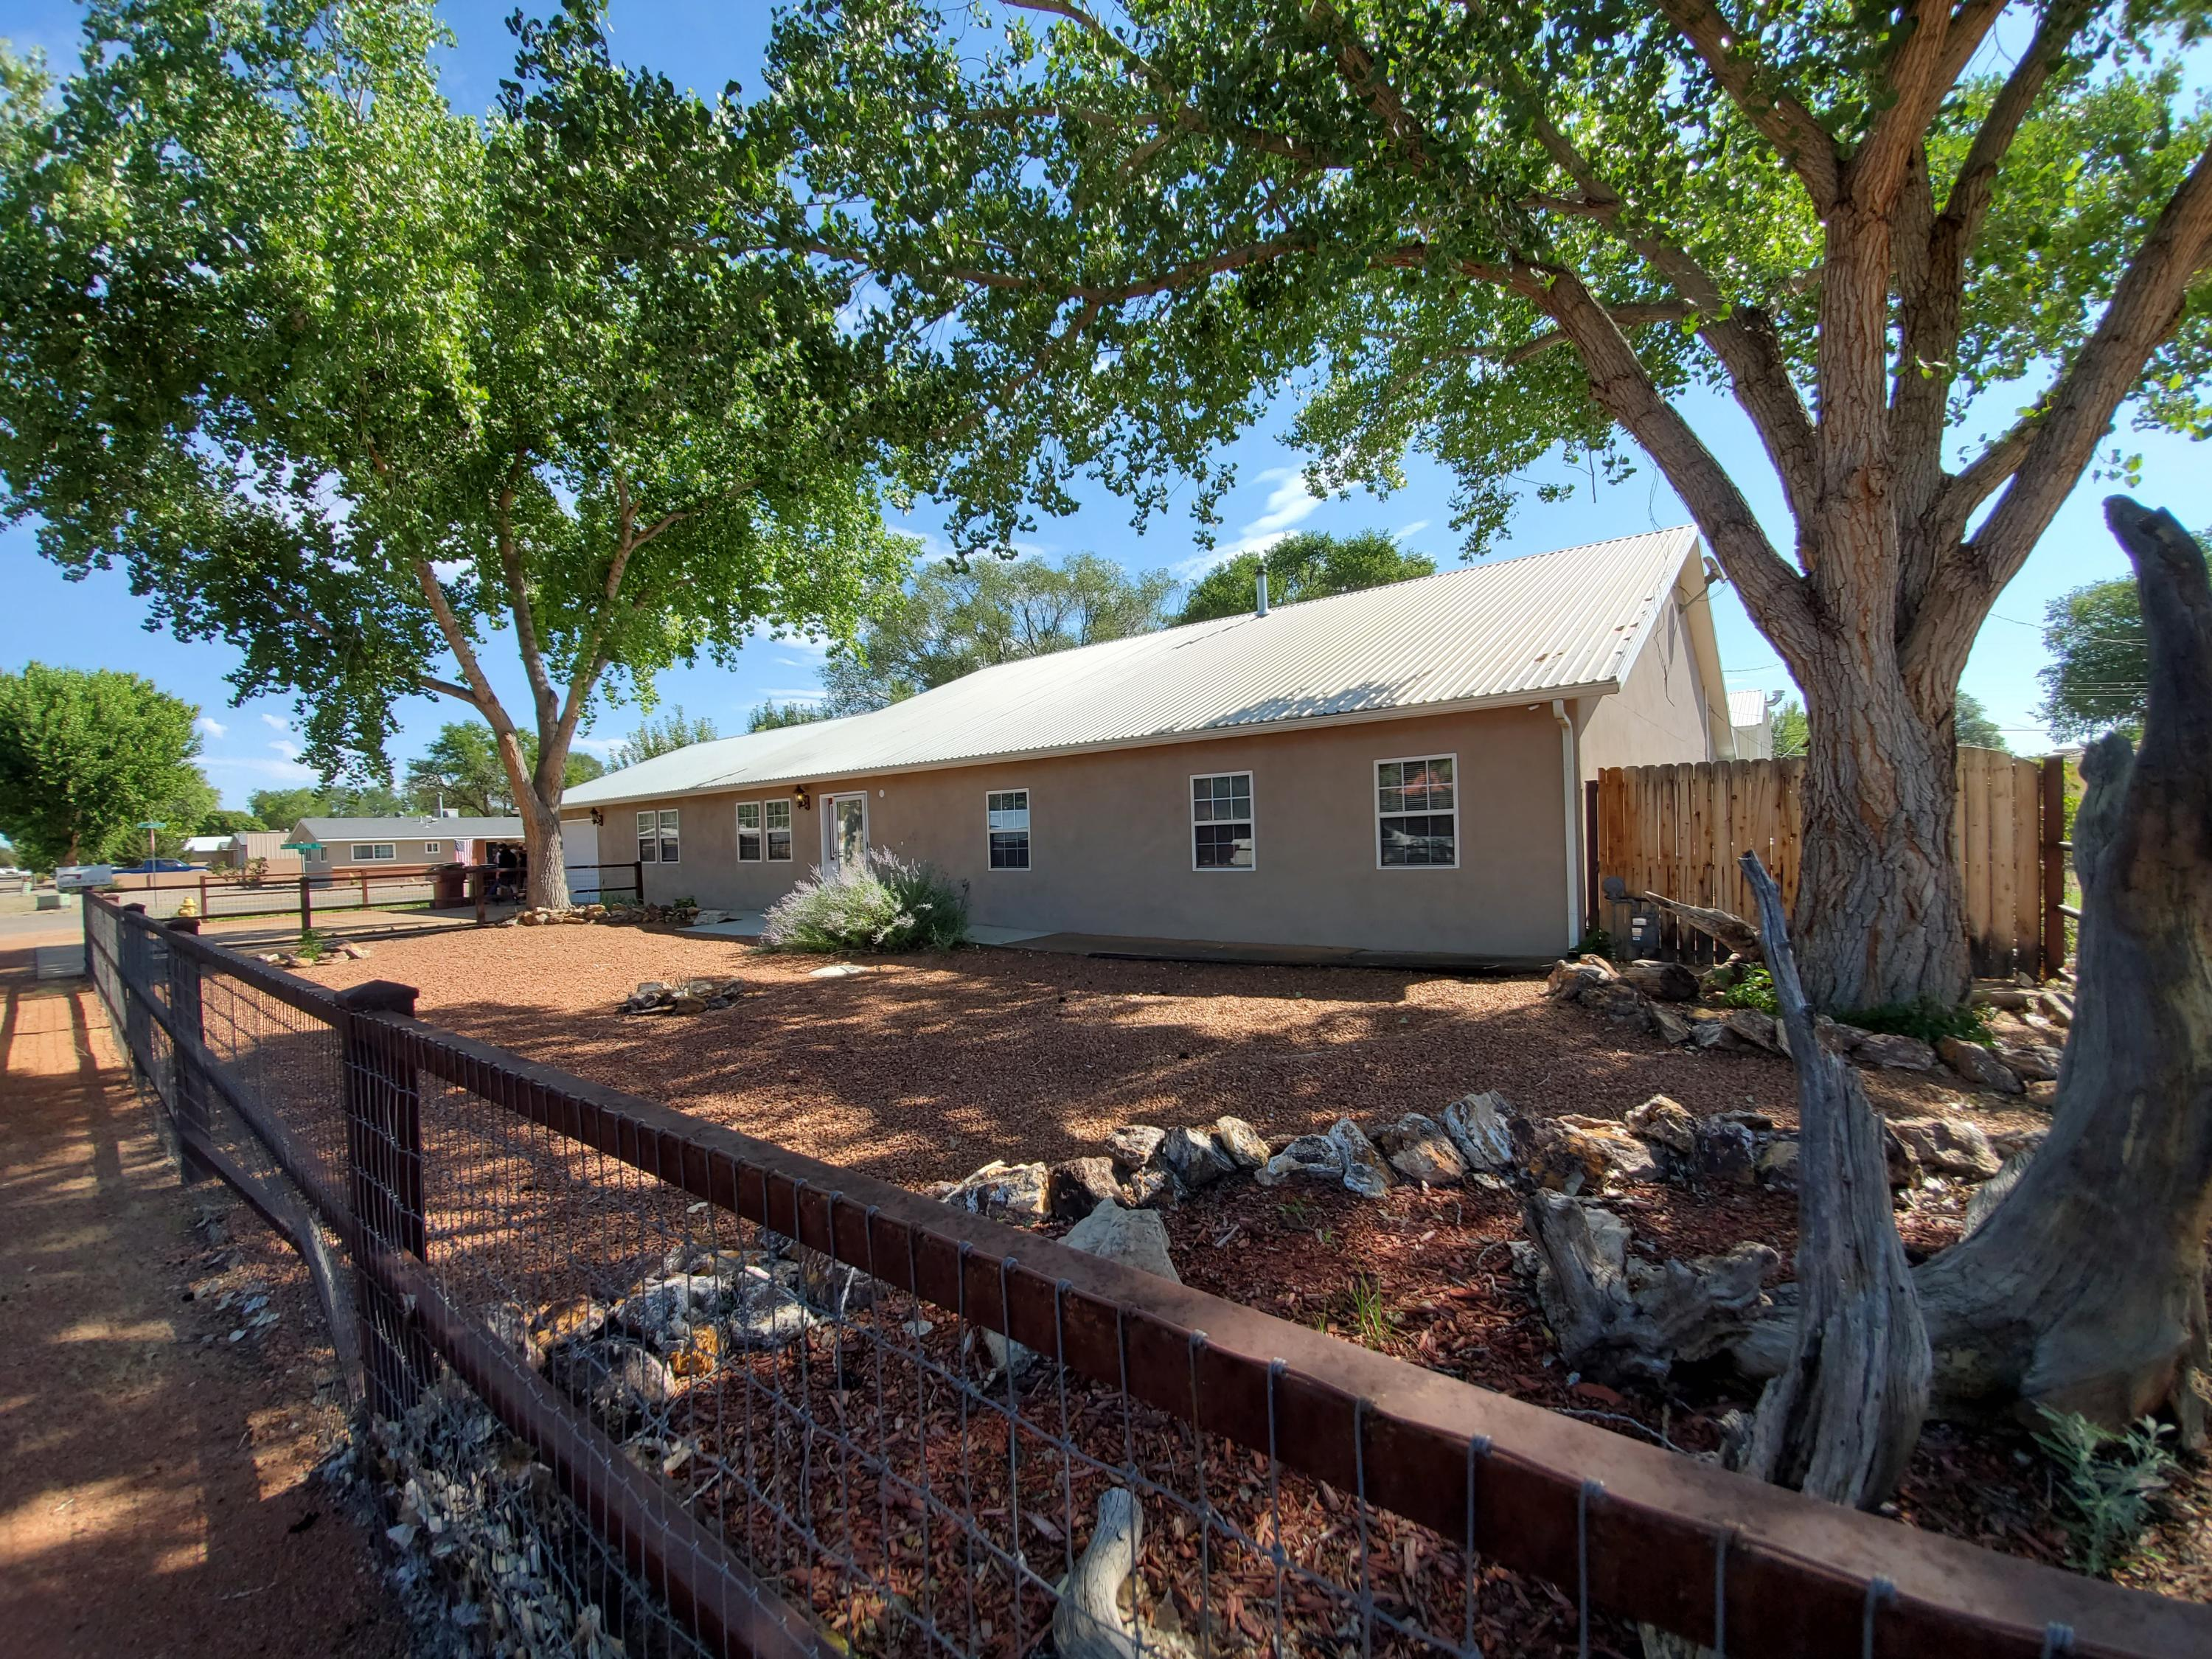 430 RANCHITOS Road Property Photo - Bosque Farms, NM real estate listing